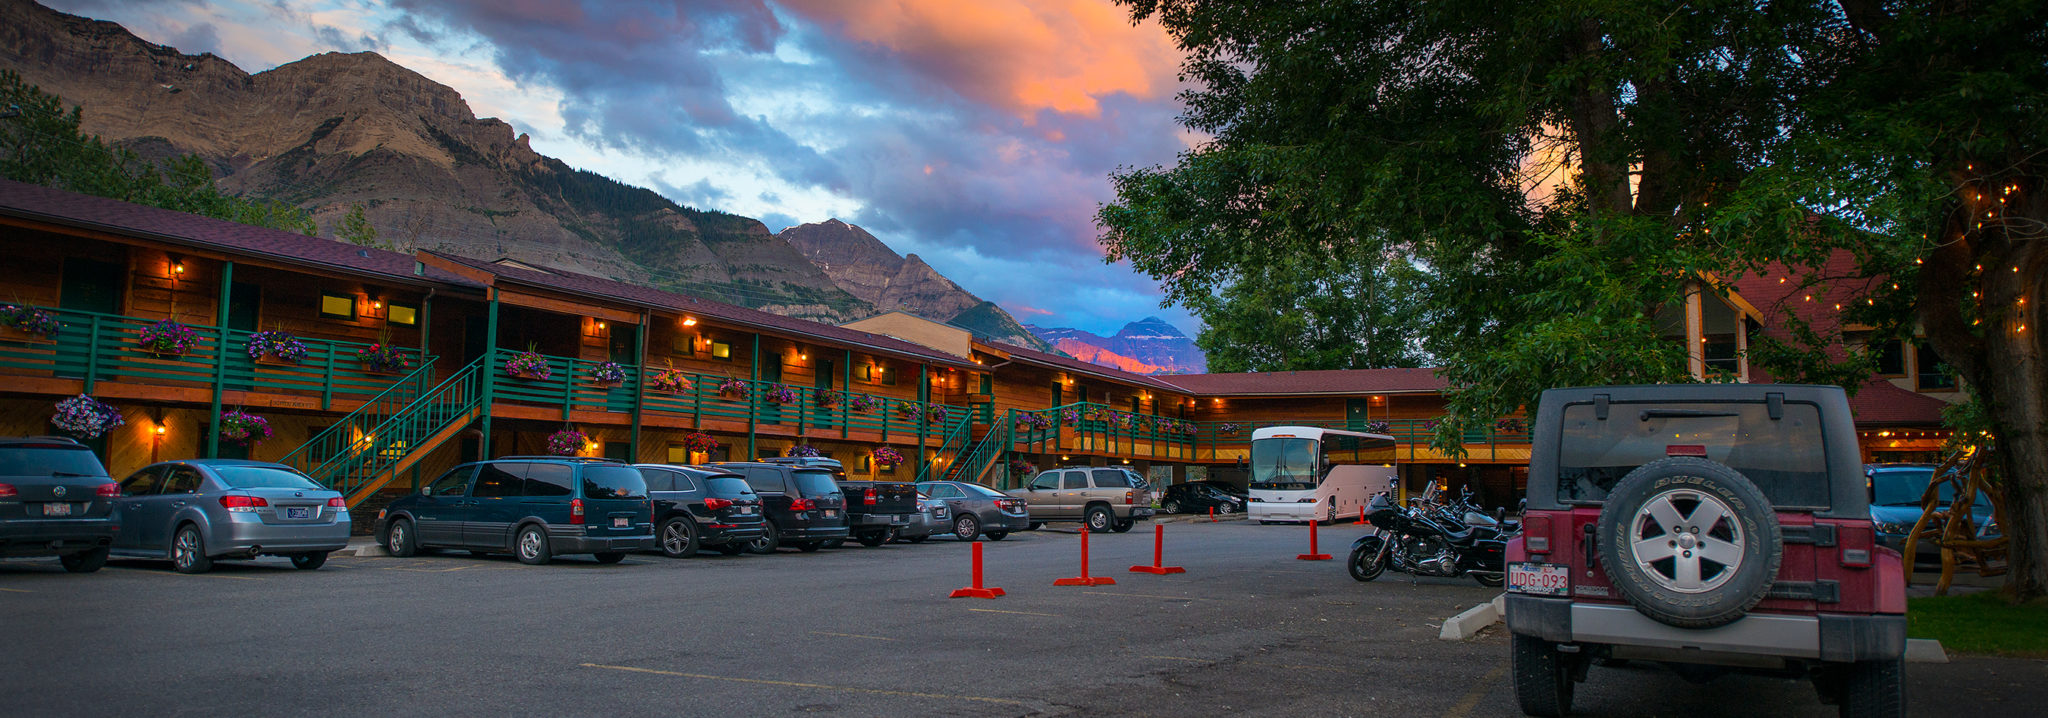 Waterton Bayshoreinn